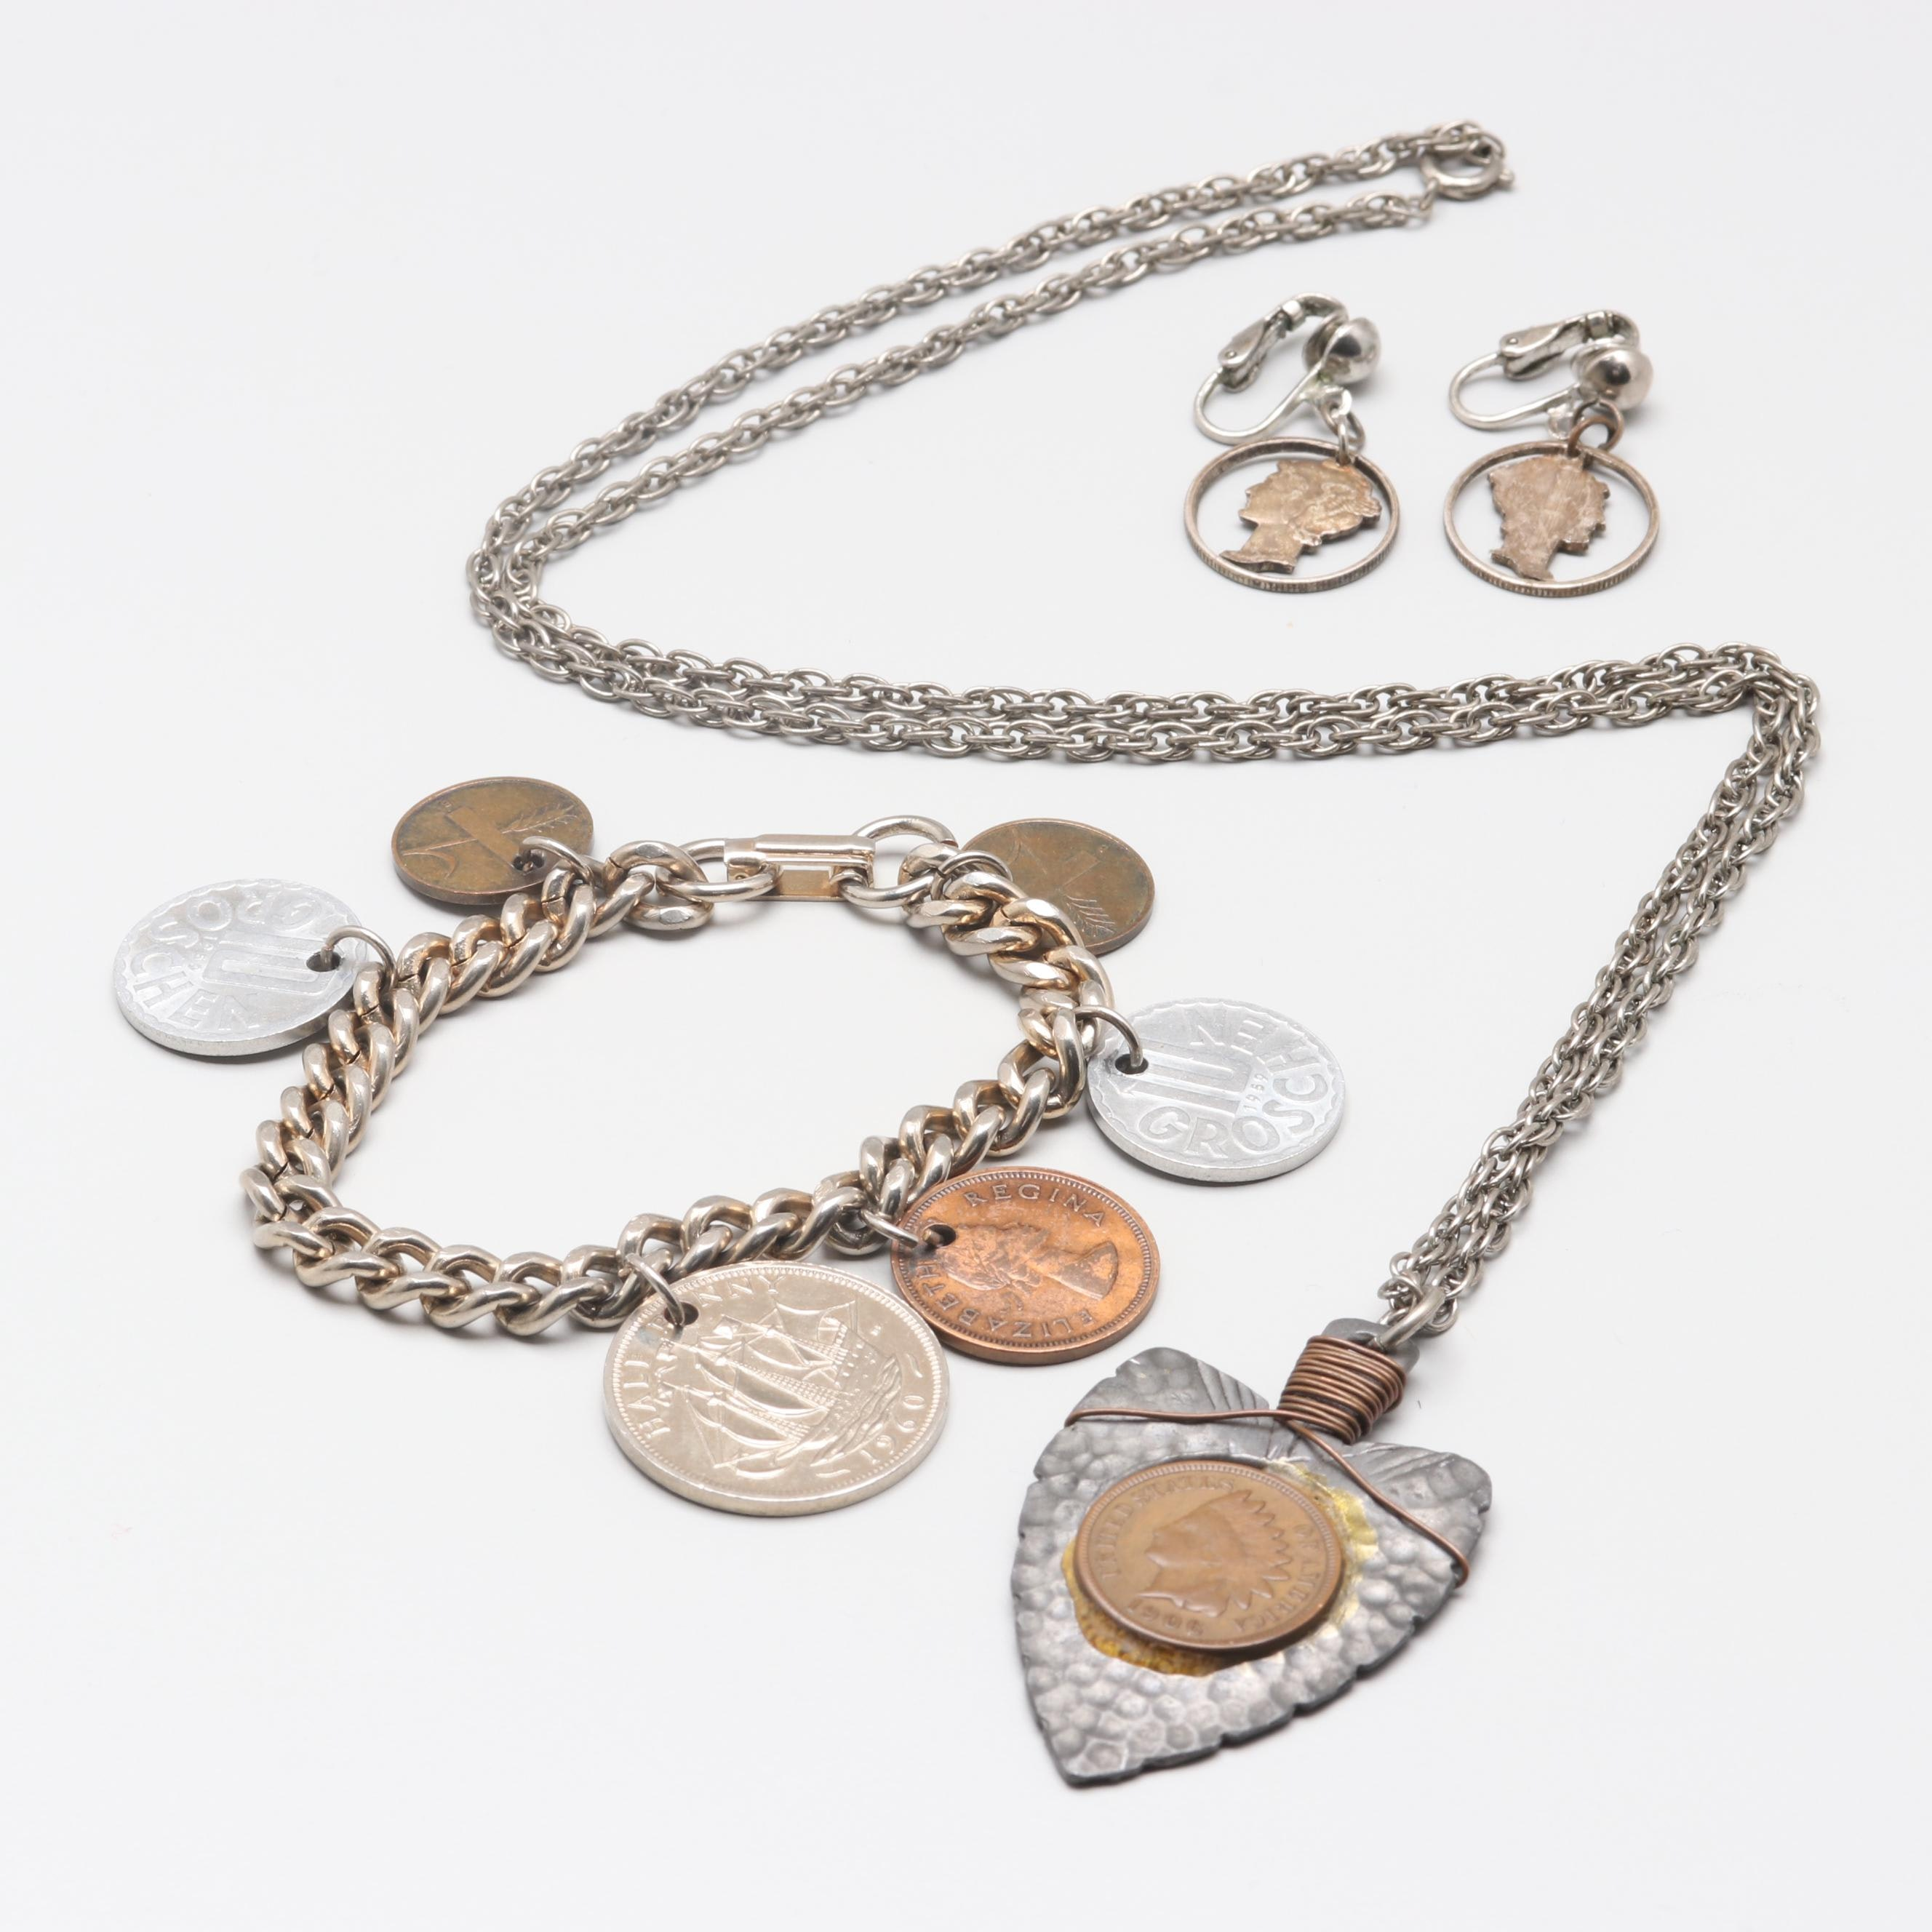 Assortment of Coin Themed Jewelry